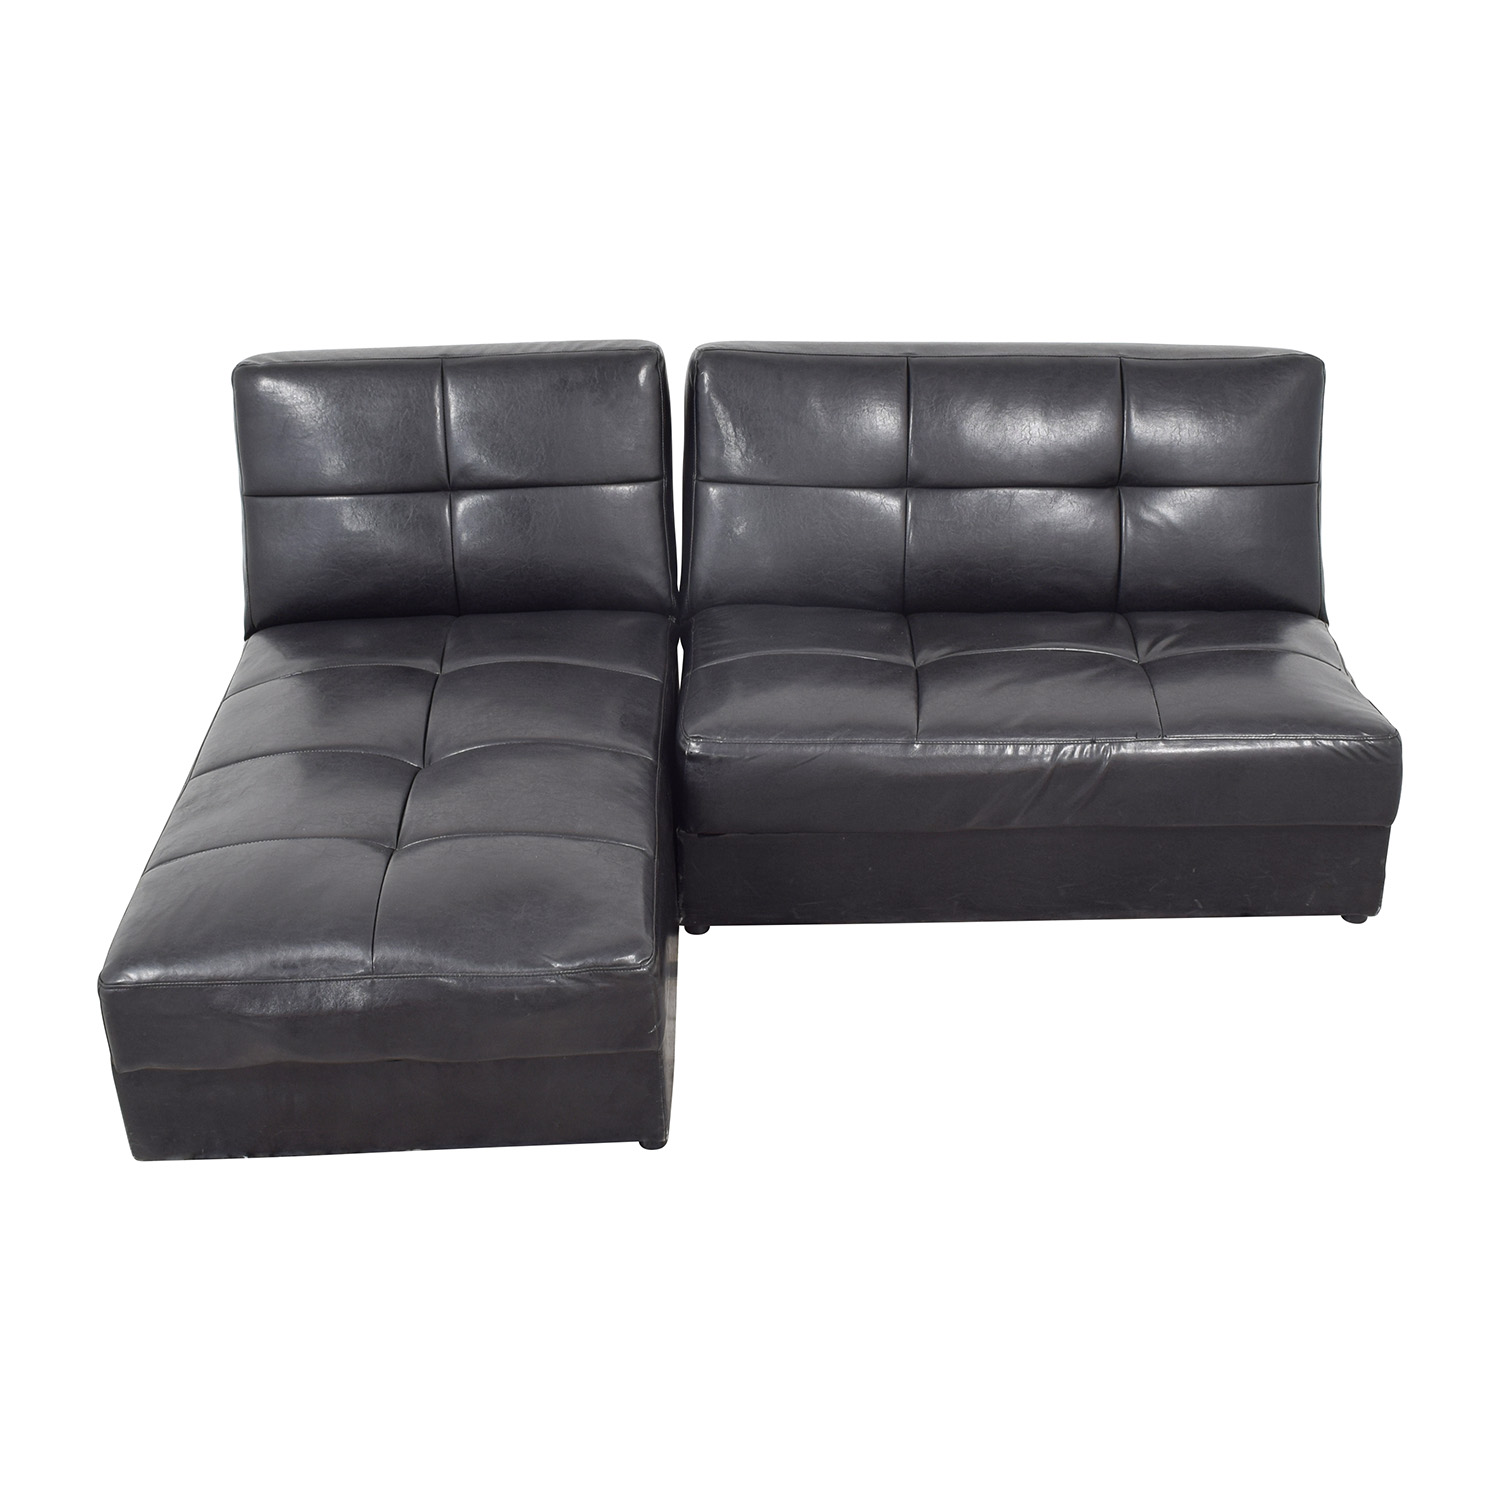 Leather Sleeper Sectional with Storage / Sectionals